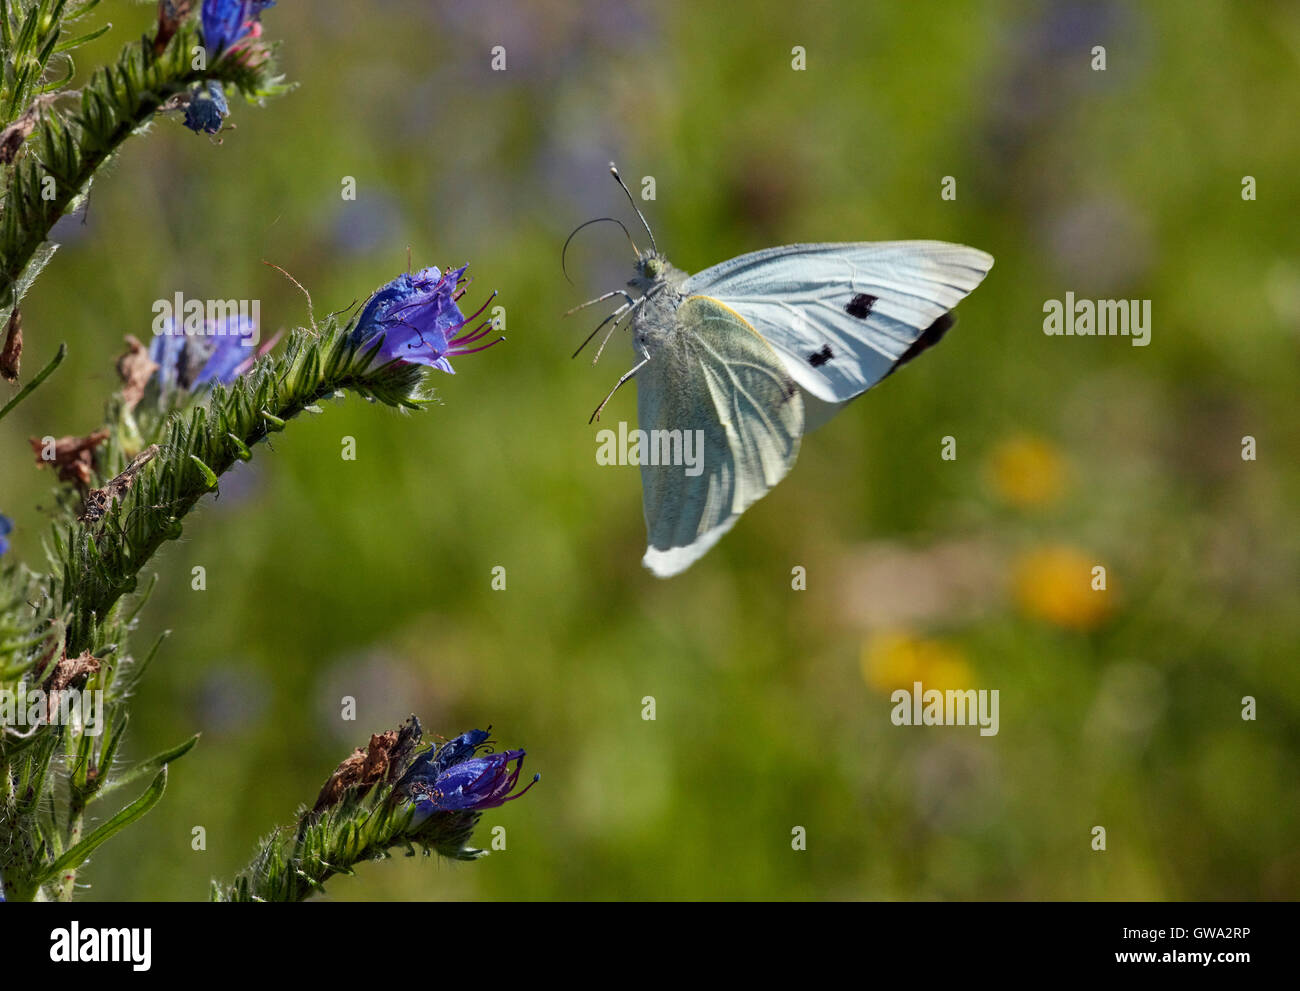 Large White butterfly taking off from Viper's Bugloss flower. - Stock Image